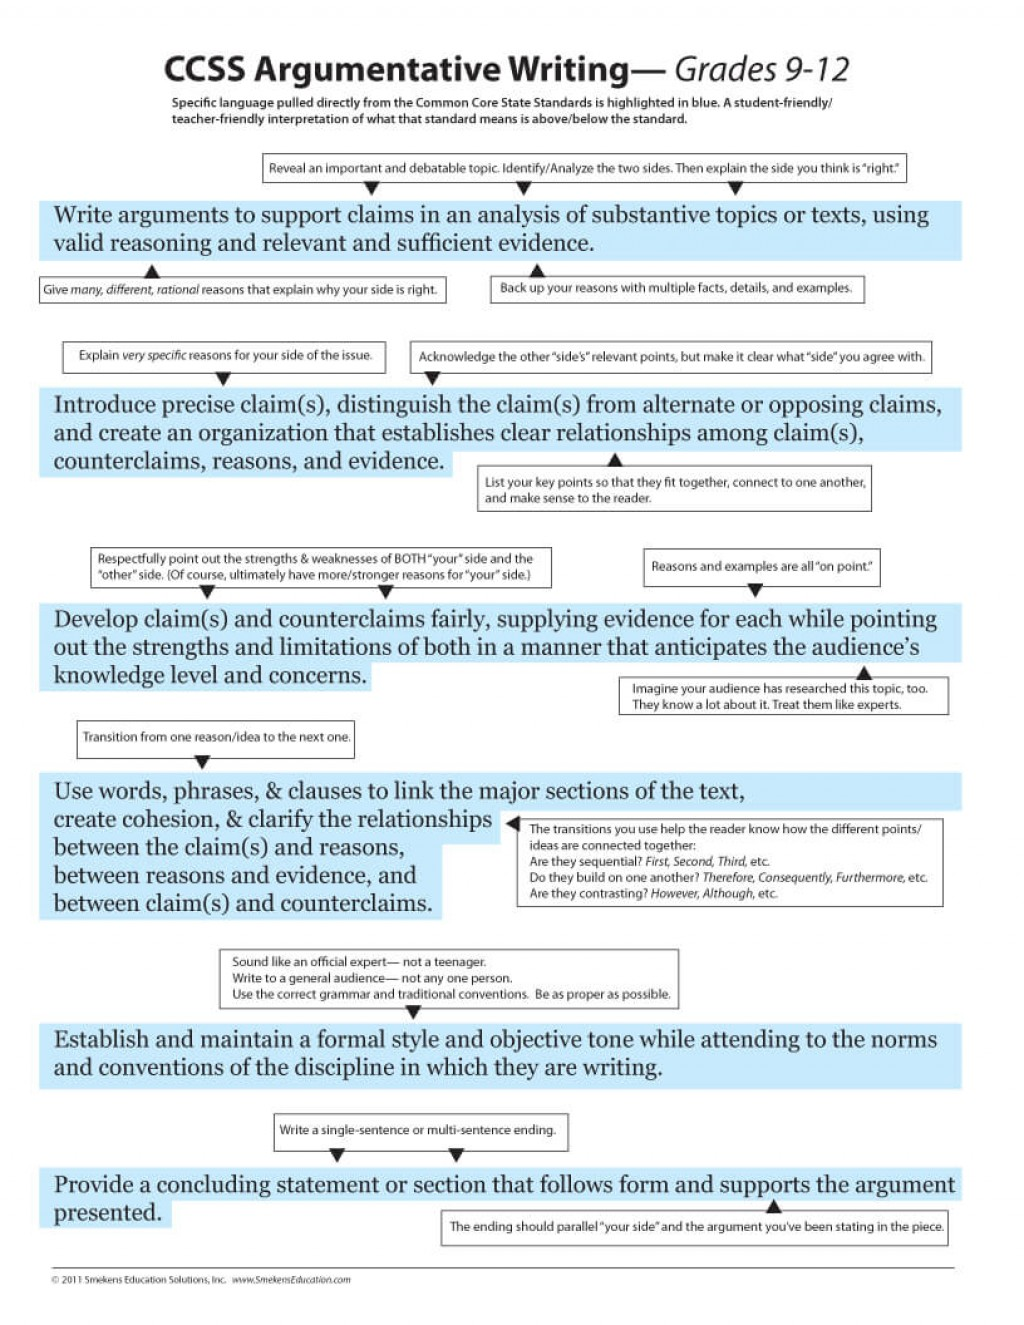 011 Essay Example Ccss Grade 9 12o How To Write Claim For An Frightening A Argumentative Good Rebuttal In Large